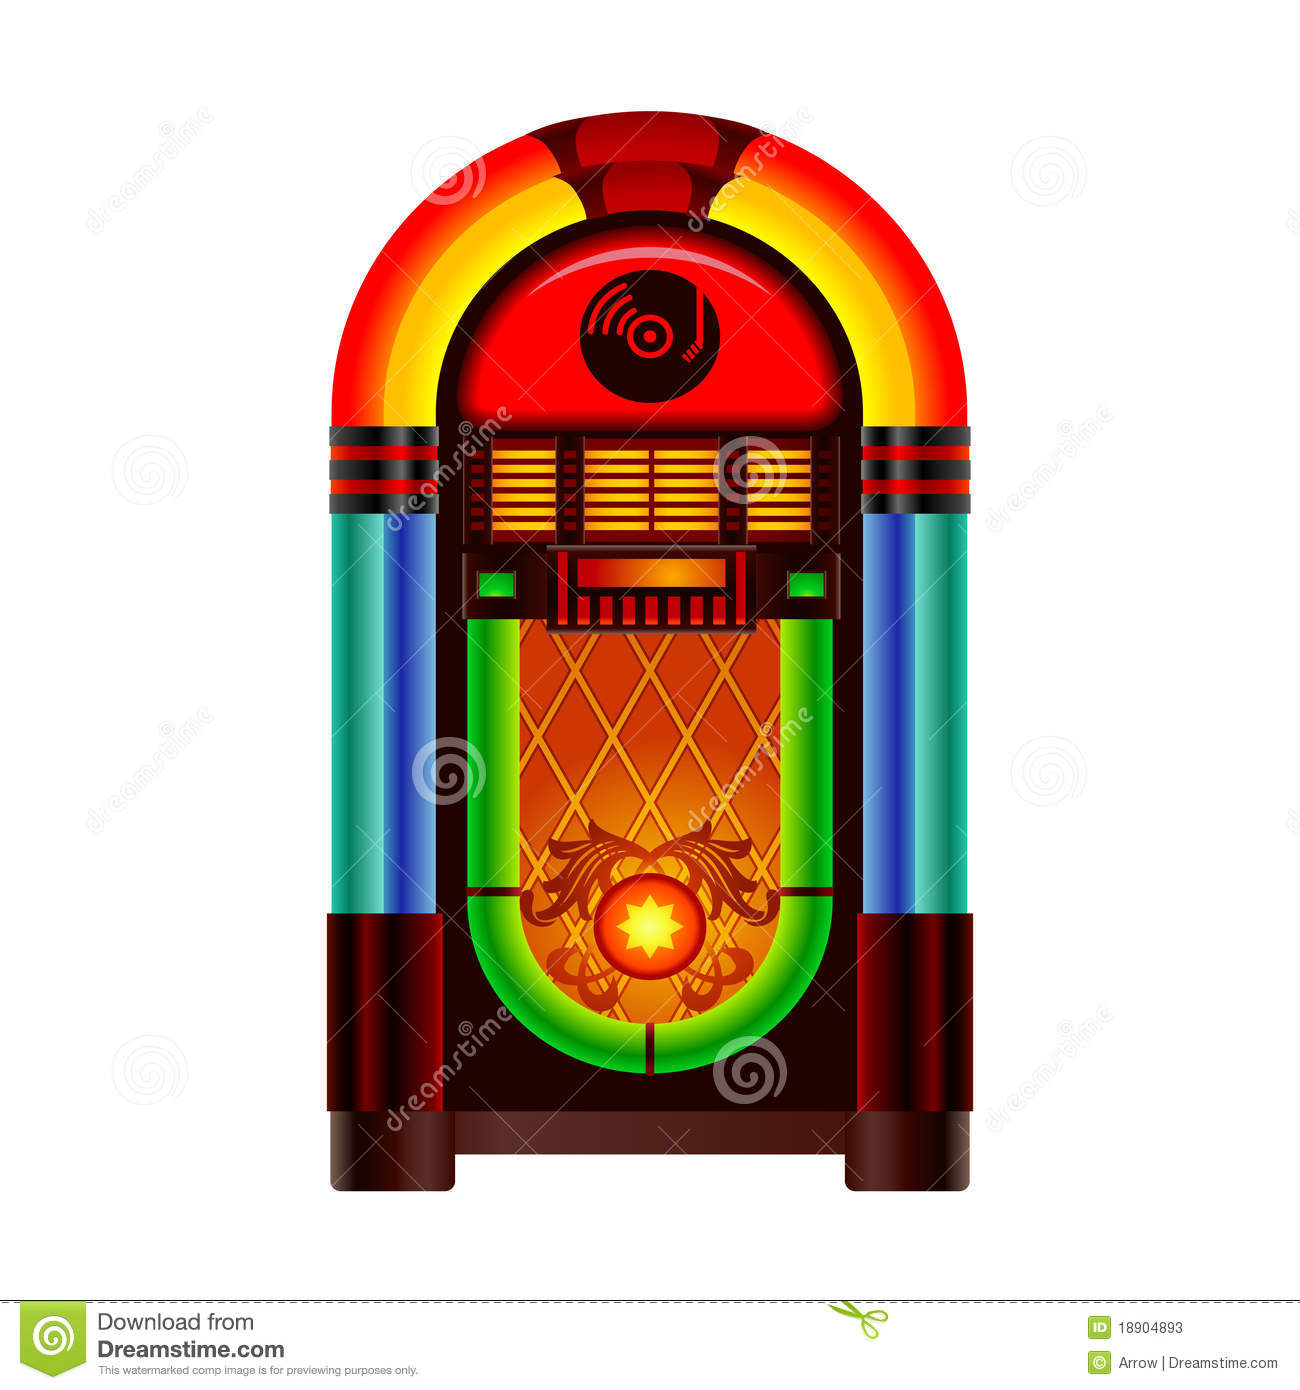 1950s Jukebox Clipart Jukebox Stock Illustrations Vectors   Clipart